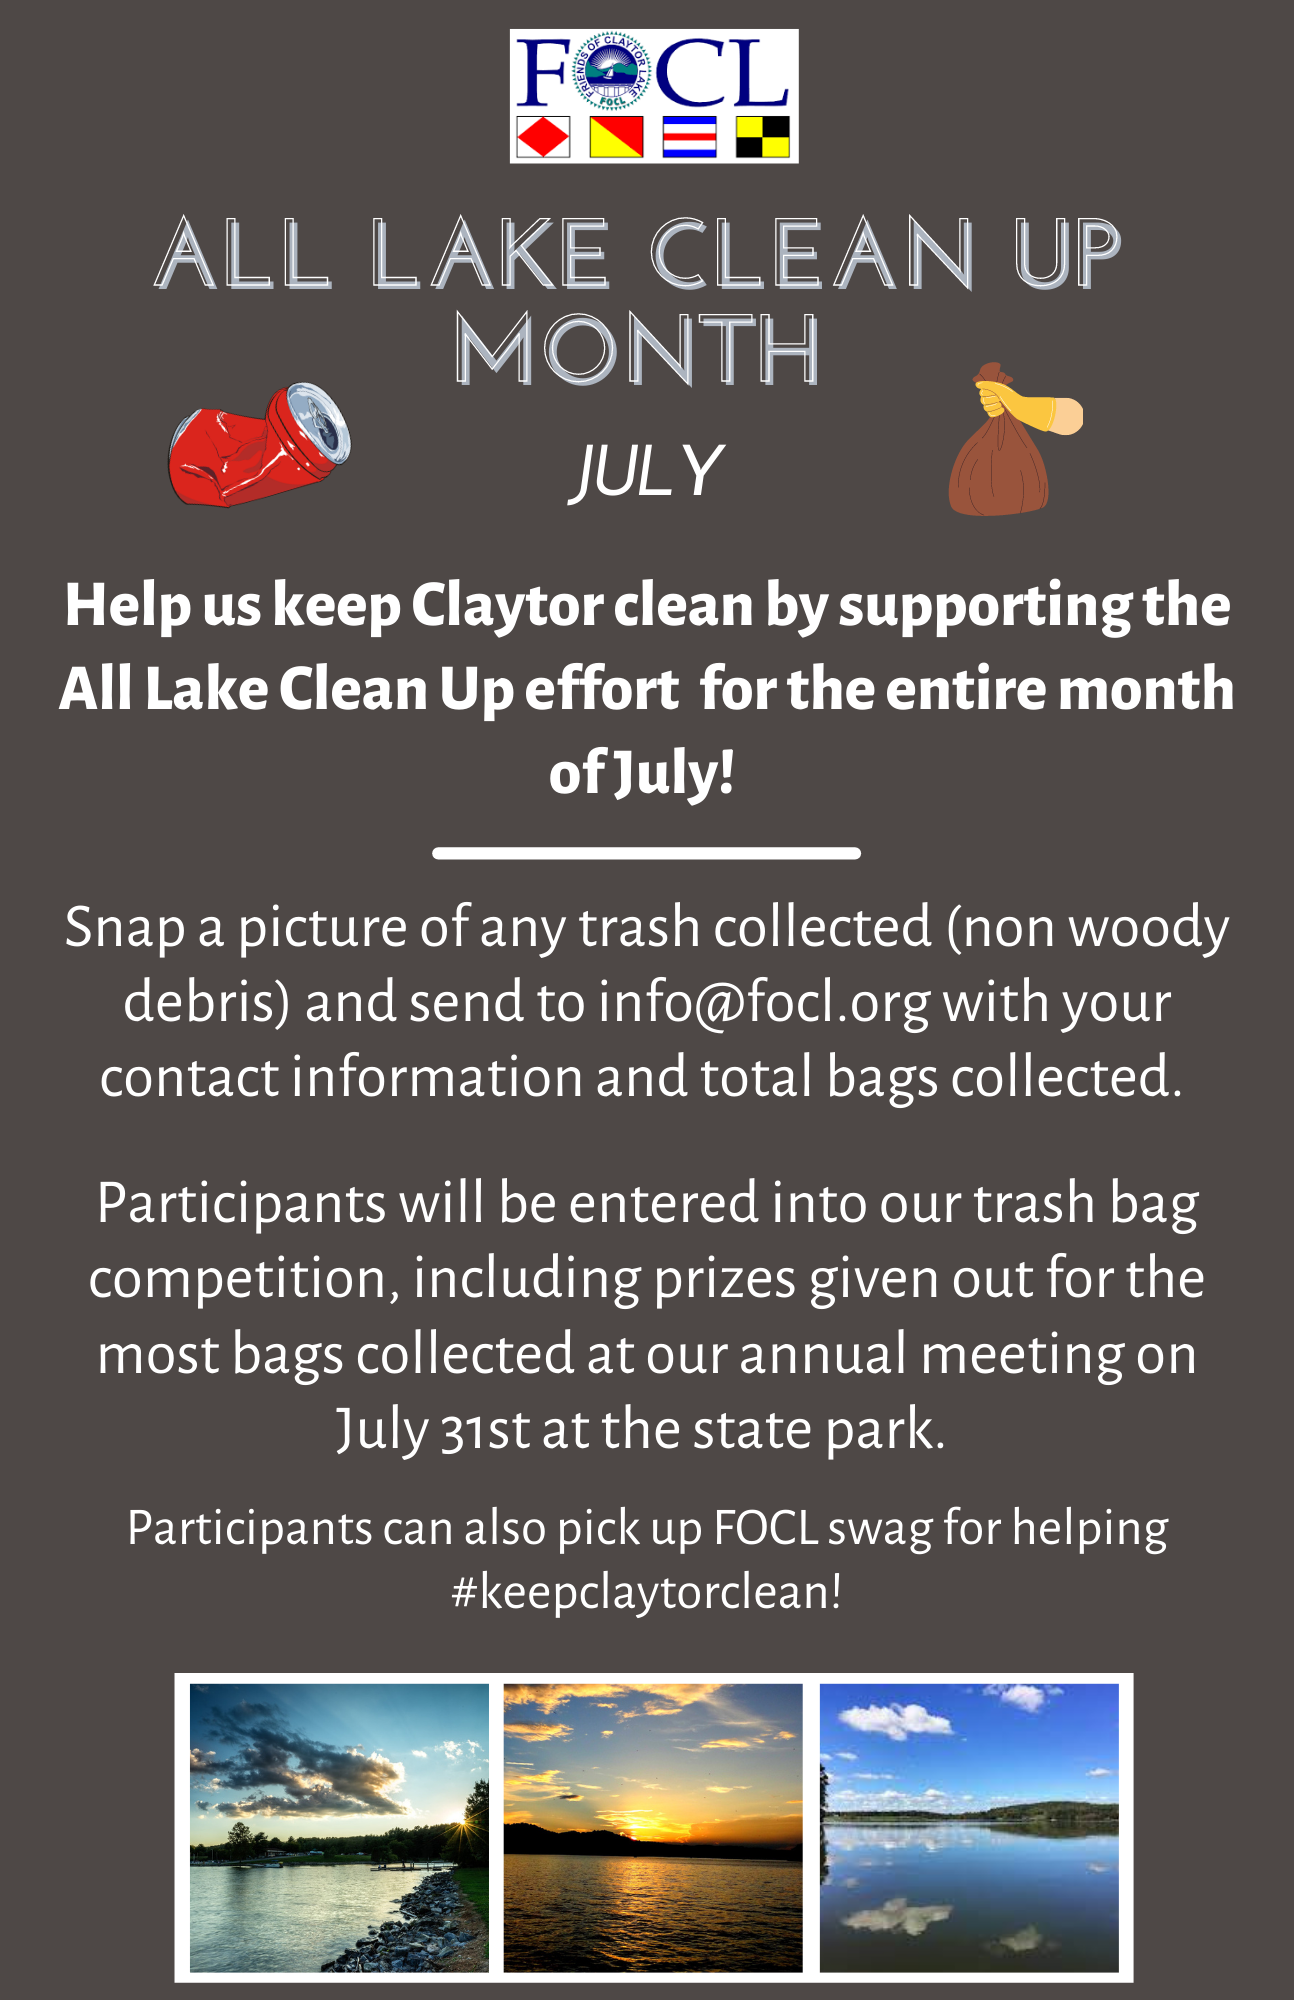 2021 All Lake Clean Up Month- JULY